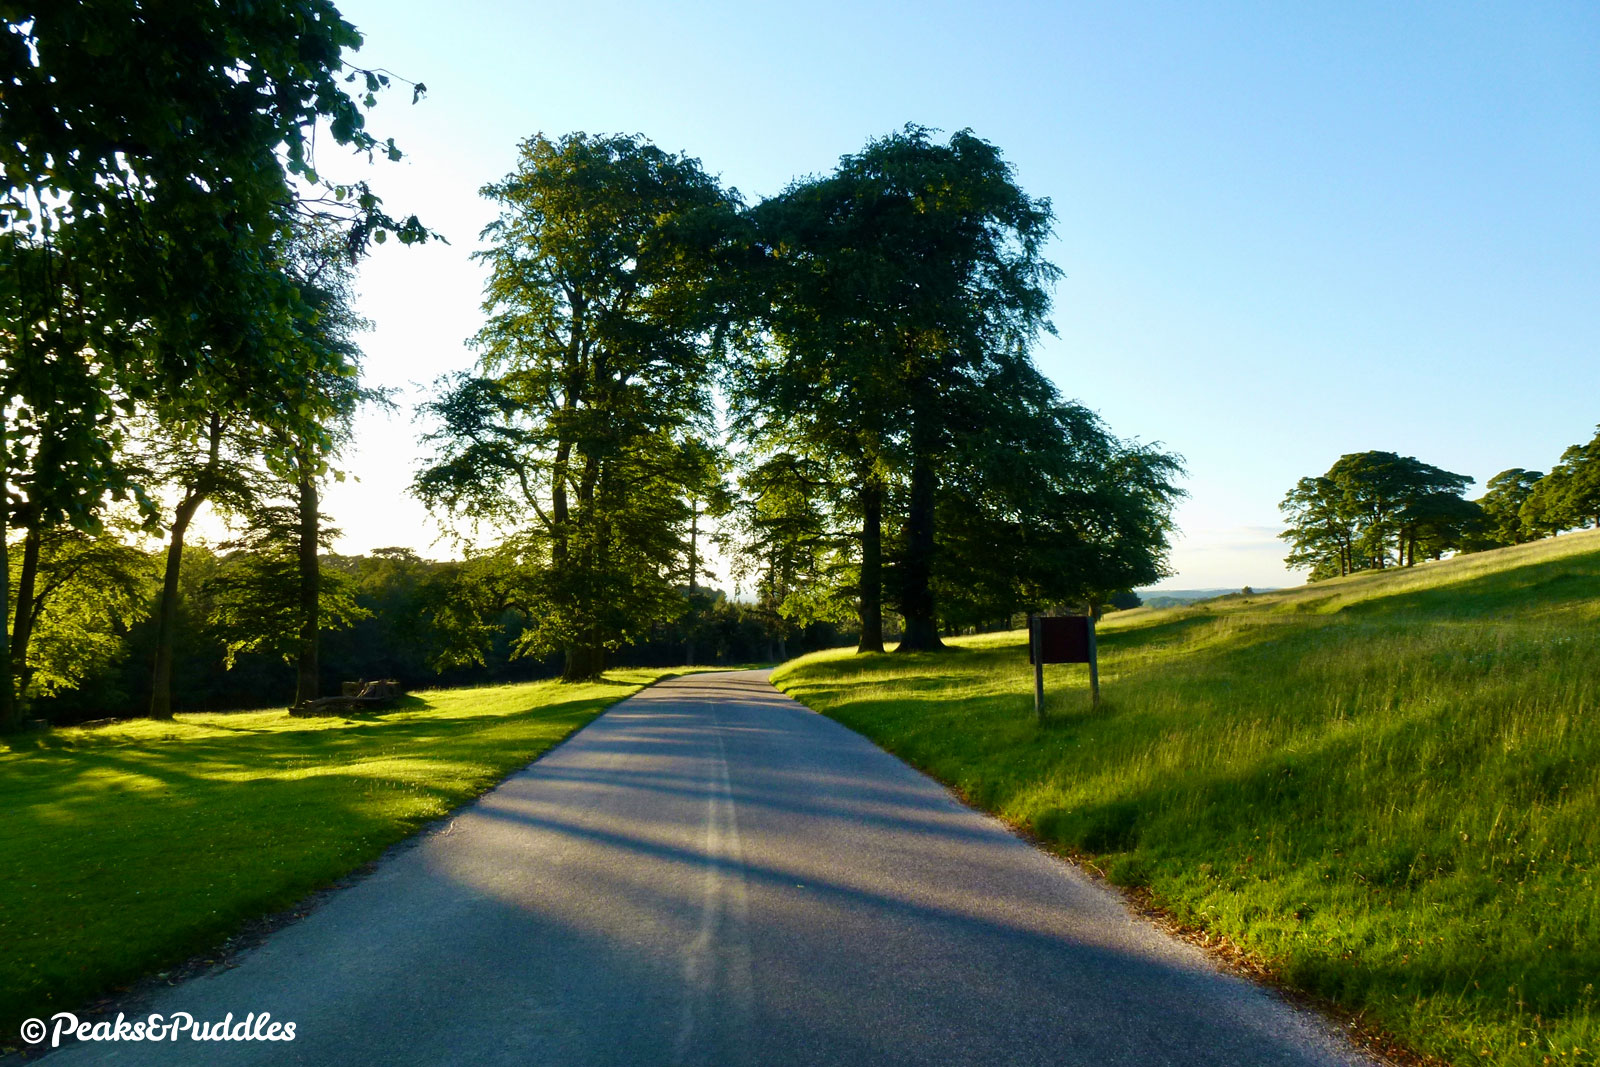 The start of the graceful mile-long descent of Lyme Park Drive, with sunlight streaming through the trees.